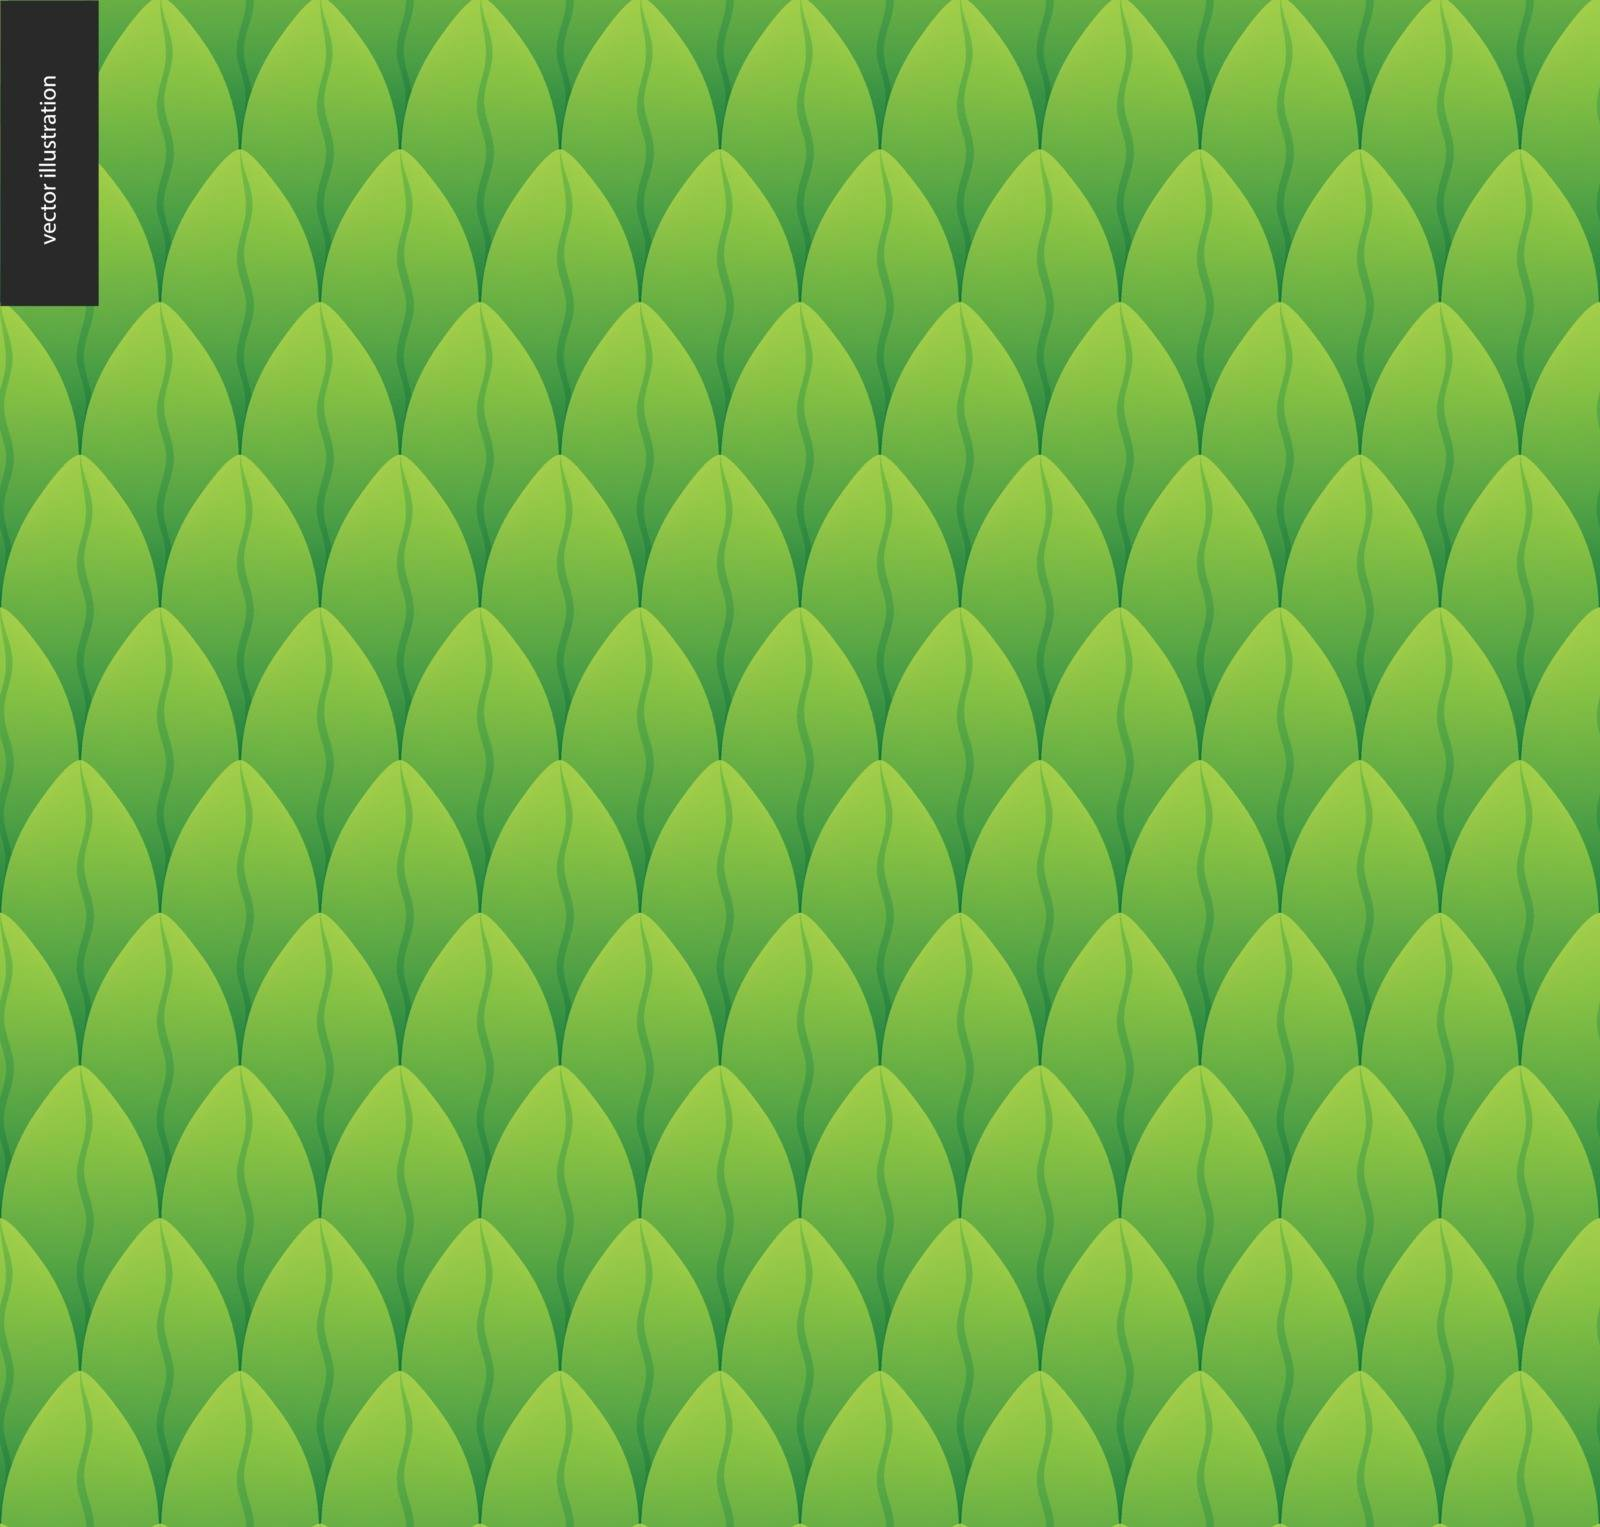 Foliage seamless pattern. Green leaf seamless vector catroon hand drawn pattern